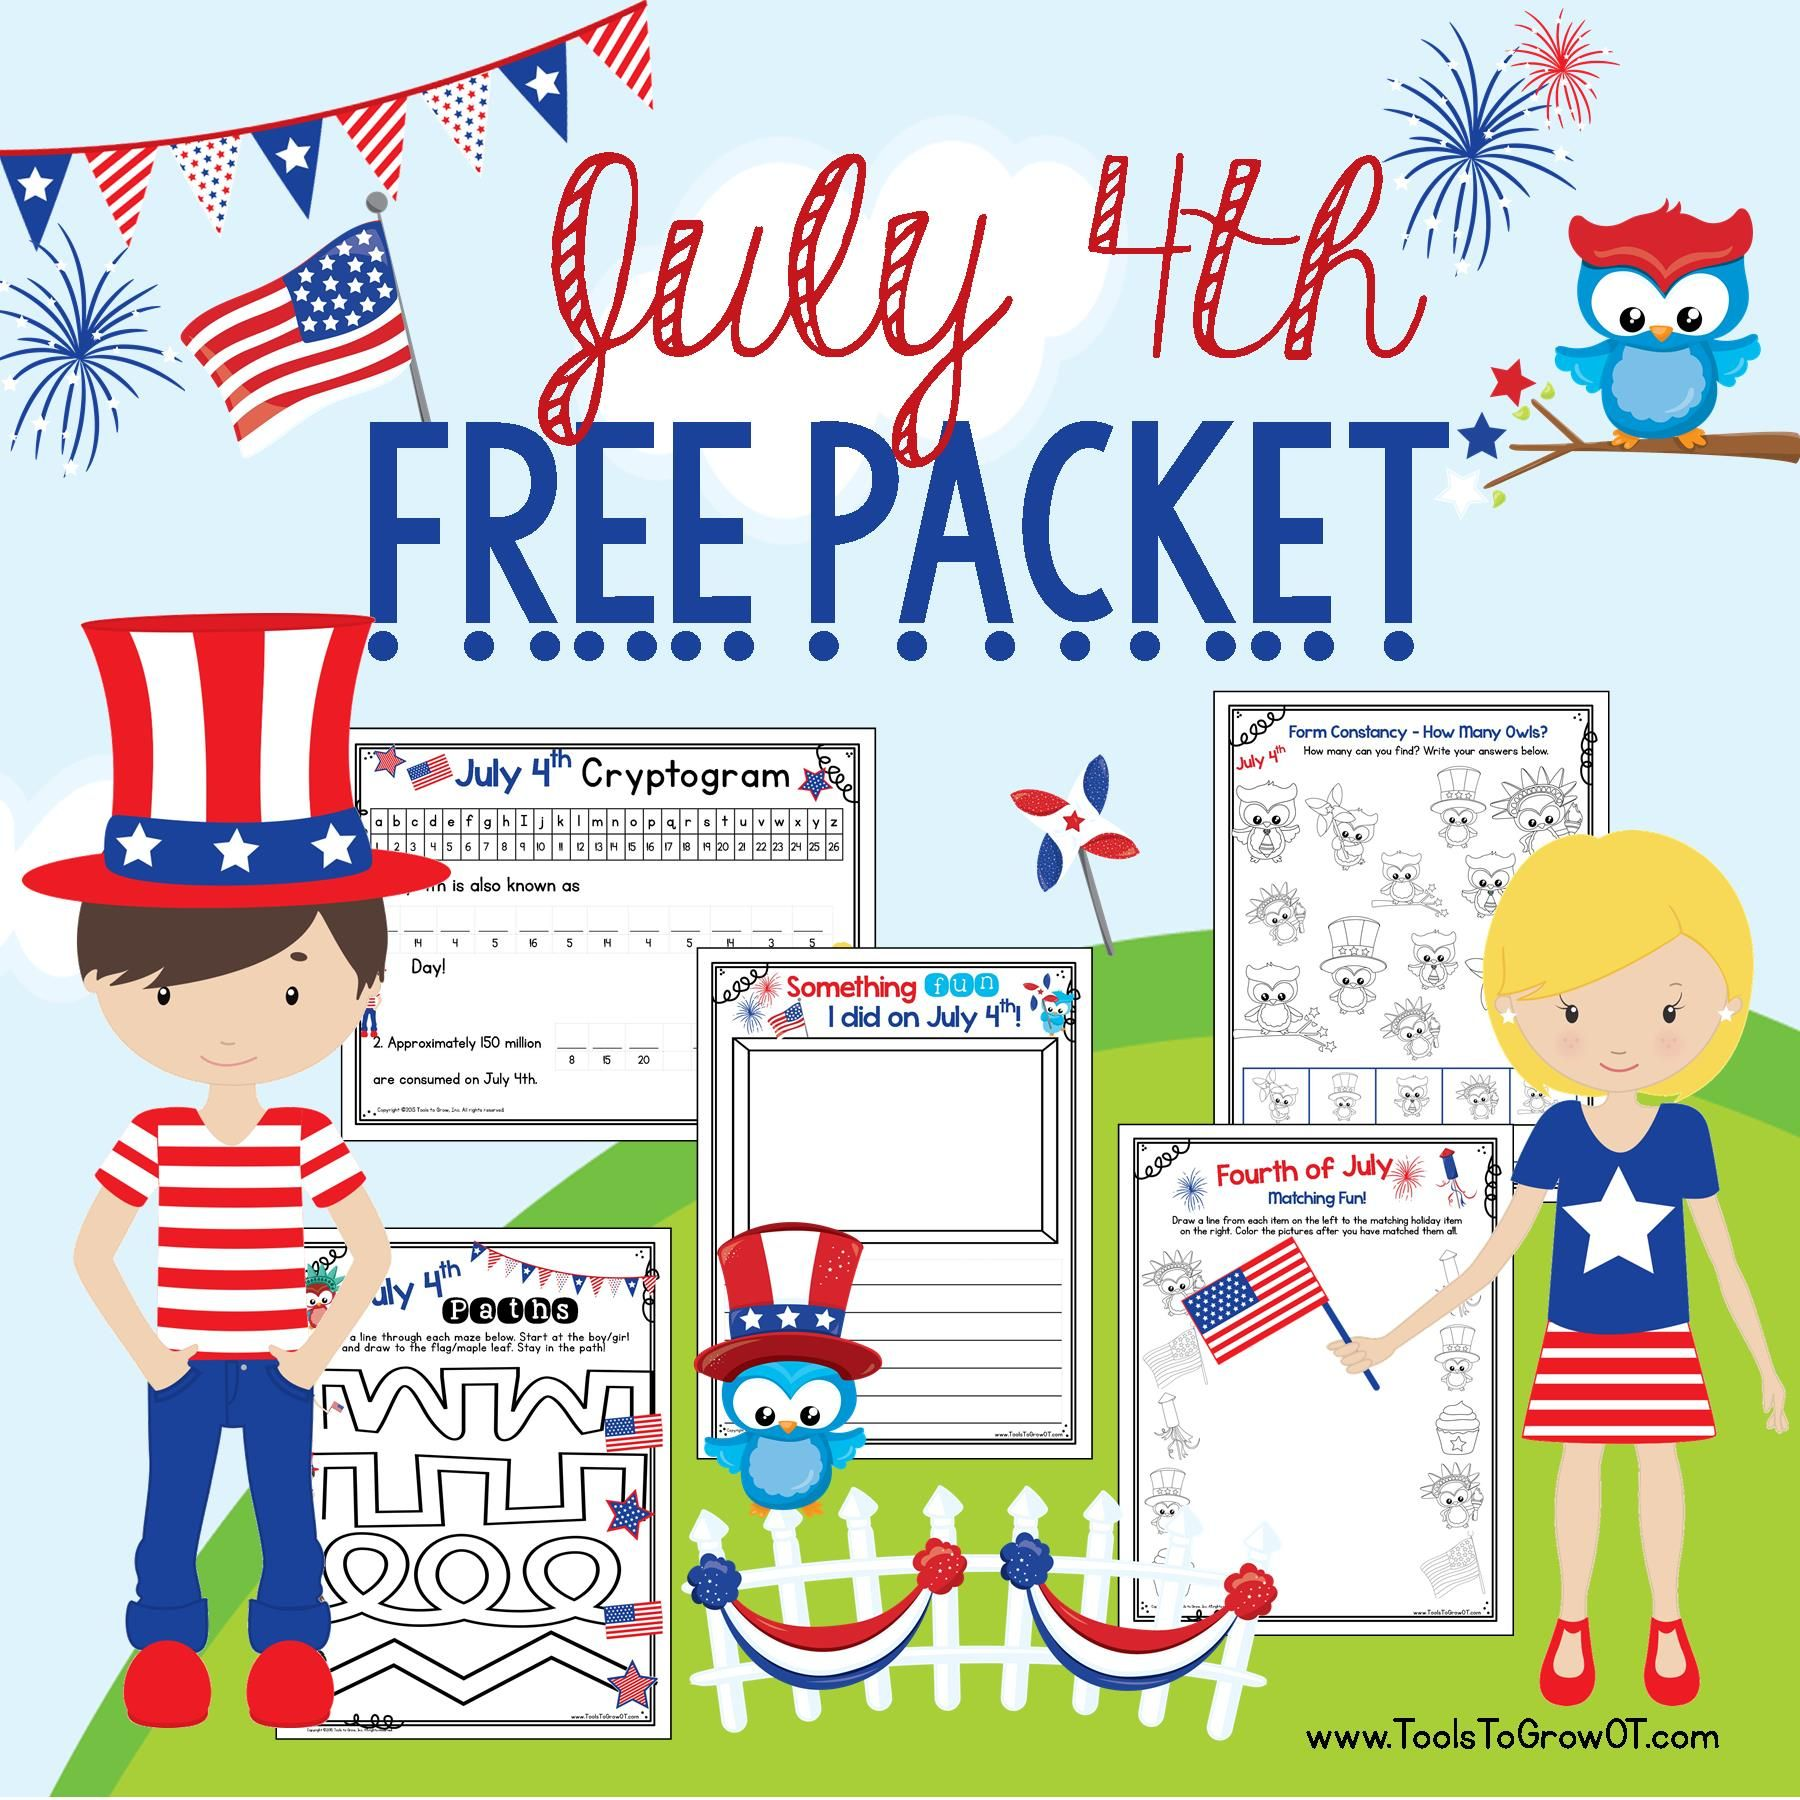 Free July 4th Packet Includes Fourth Of July Handwriting Page Maze Paths Cryptogram Form